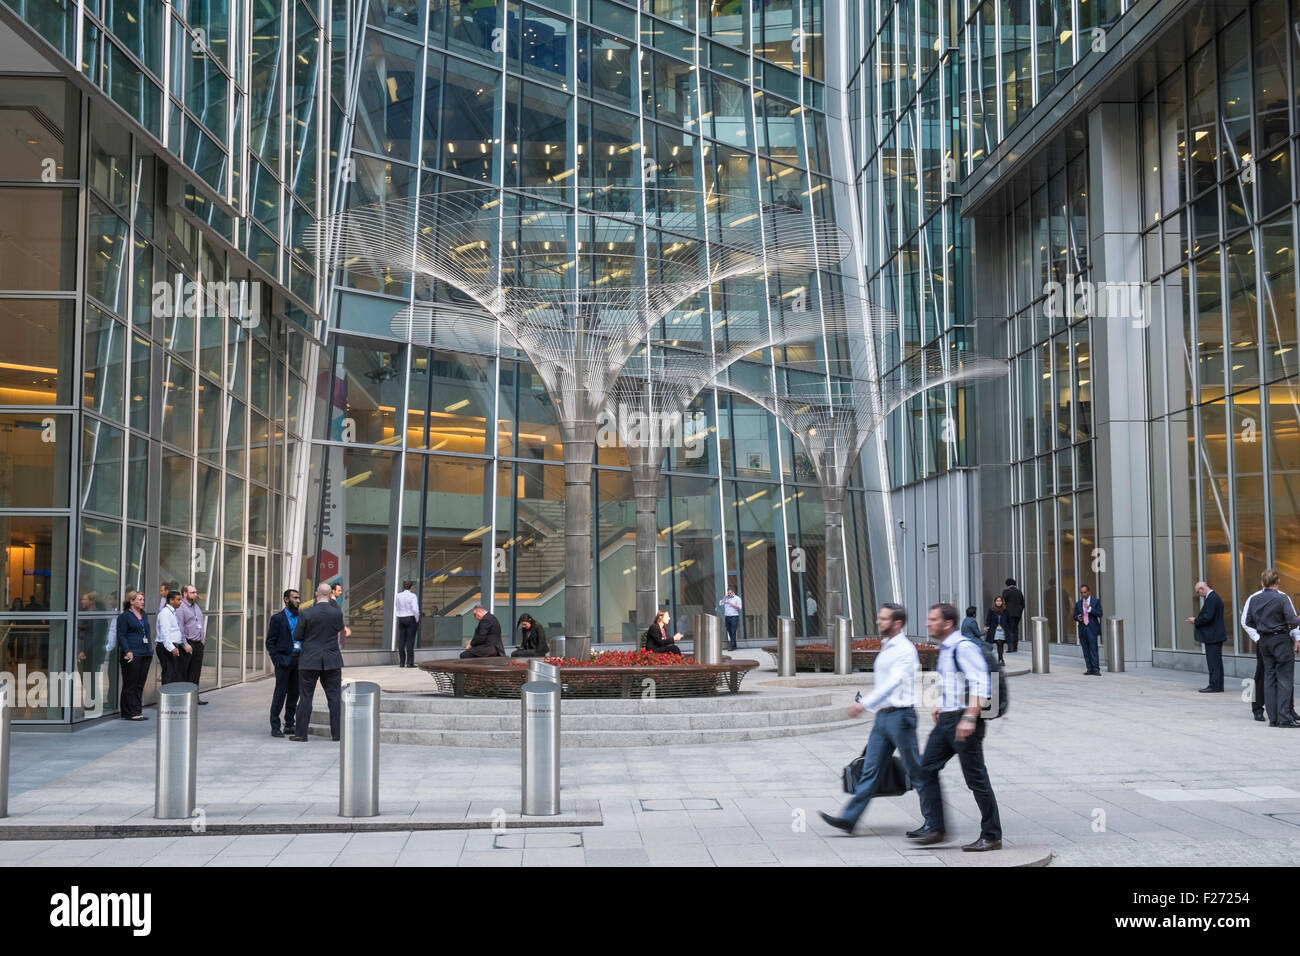 Workers outside office buildings in Canary Wharf financial district, London, England UK - Stock Image